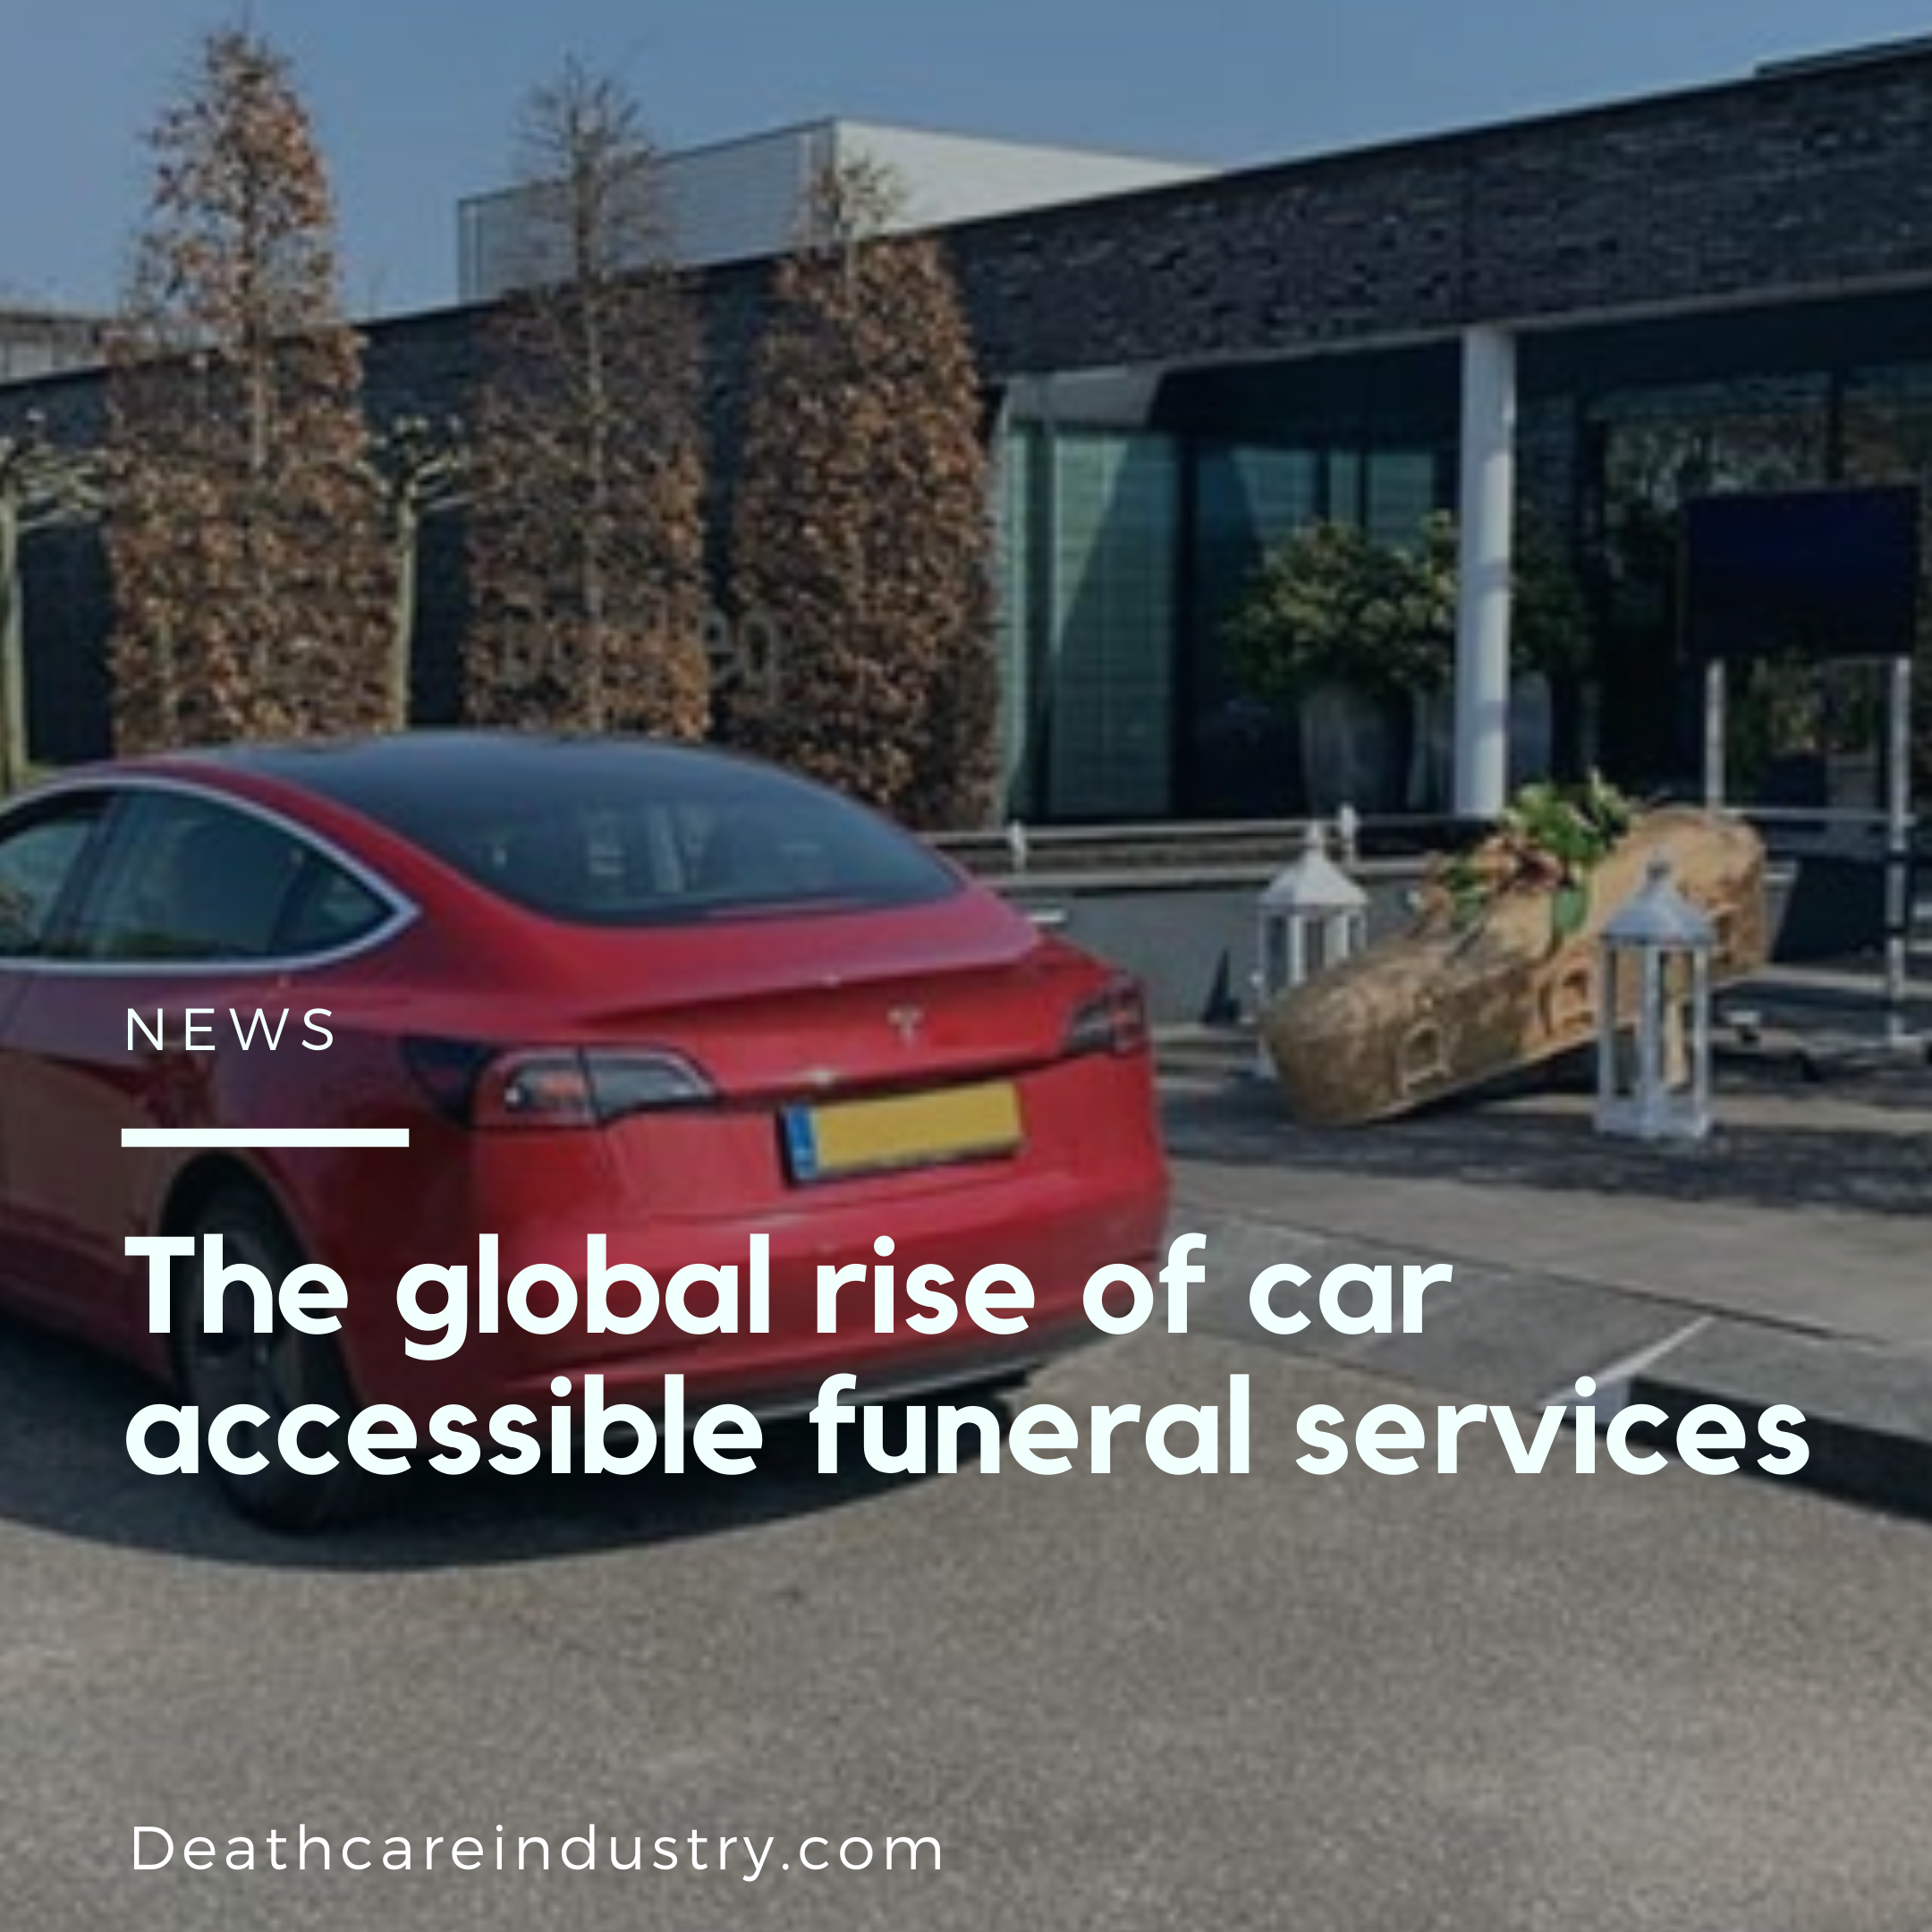 The global rise of car accessible funeral services in 2020